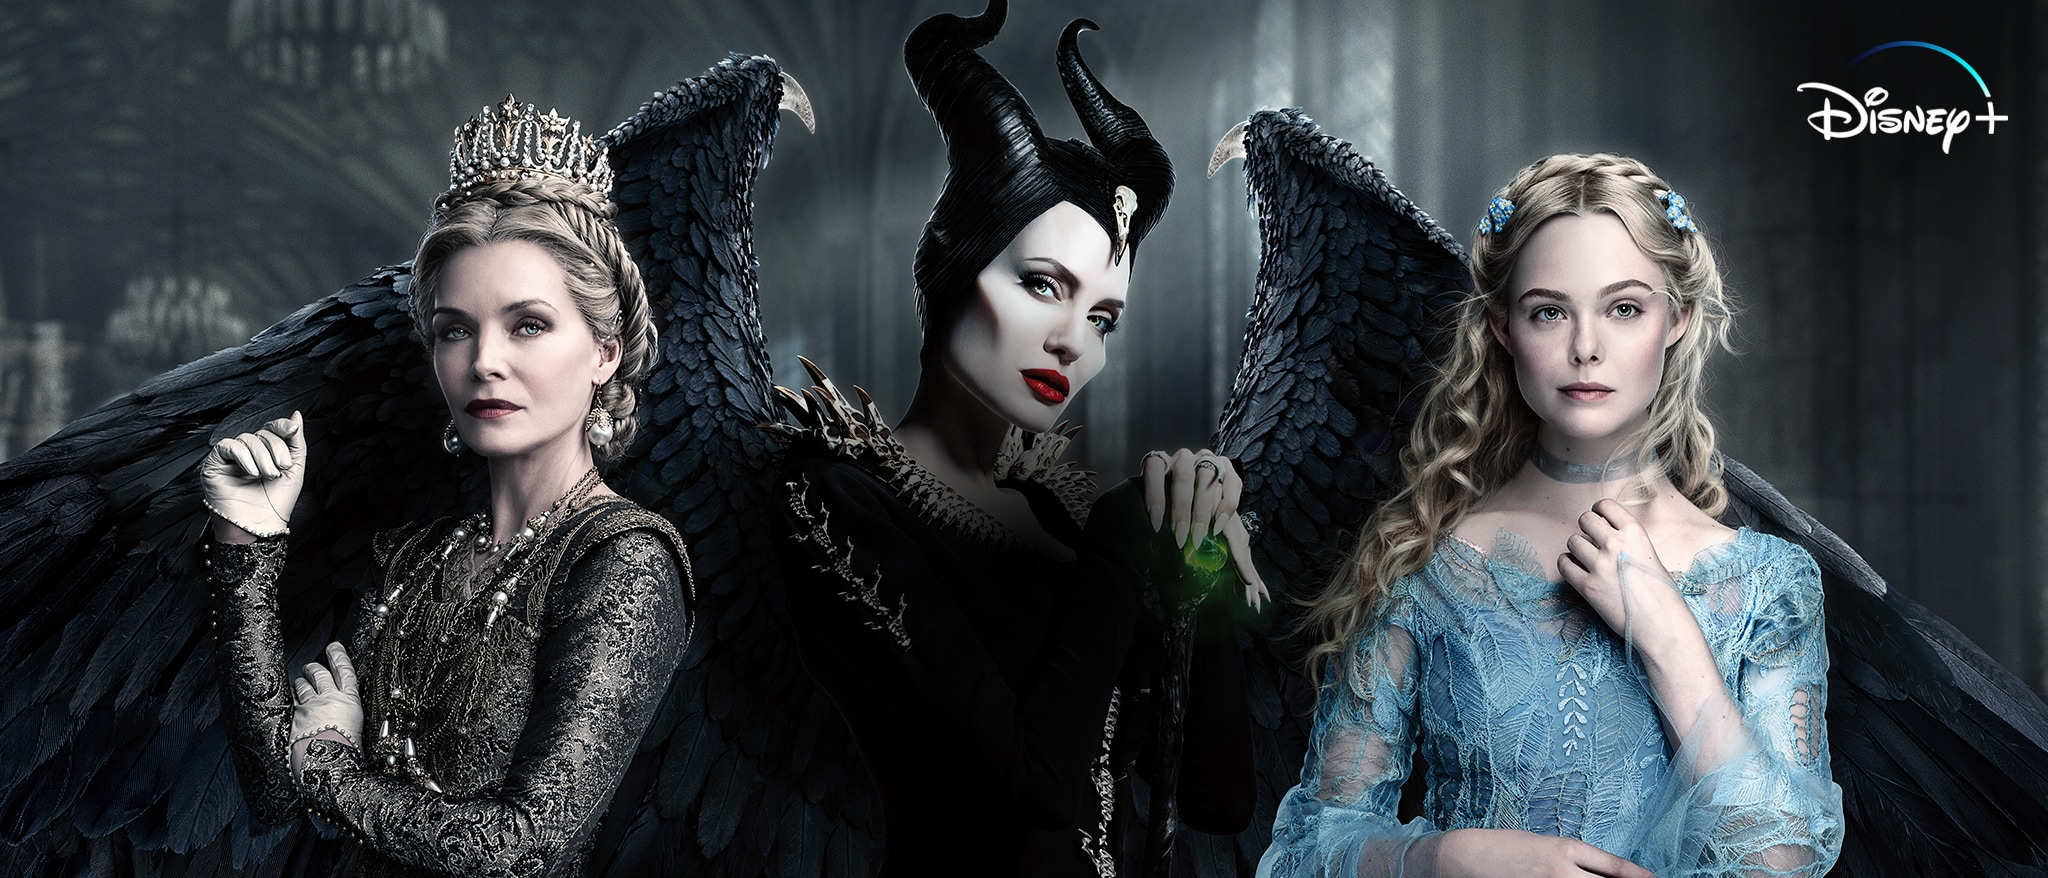 Maleficent: Mistress of Evil Hero Streaming